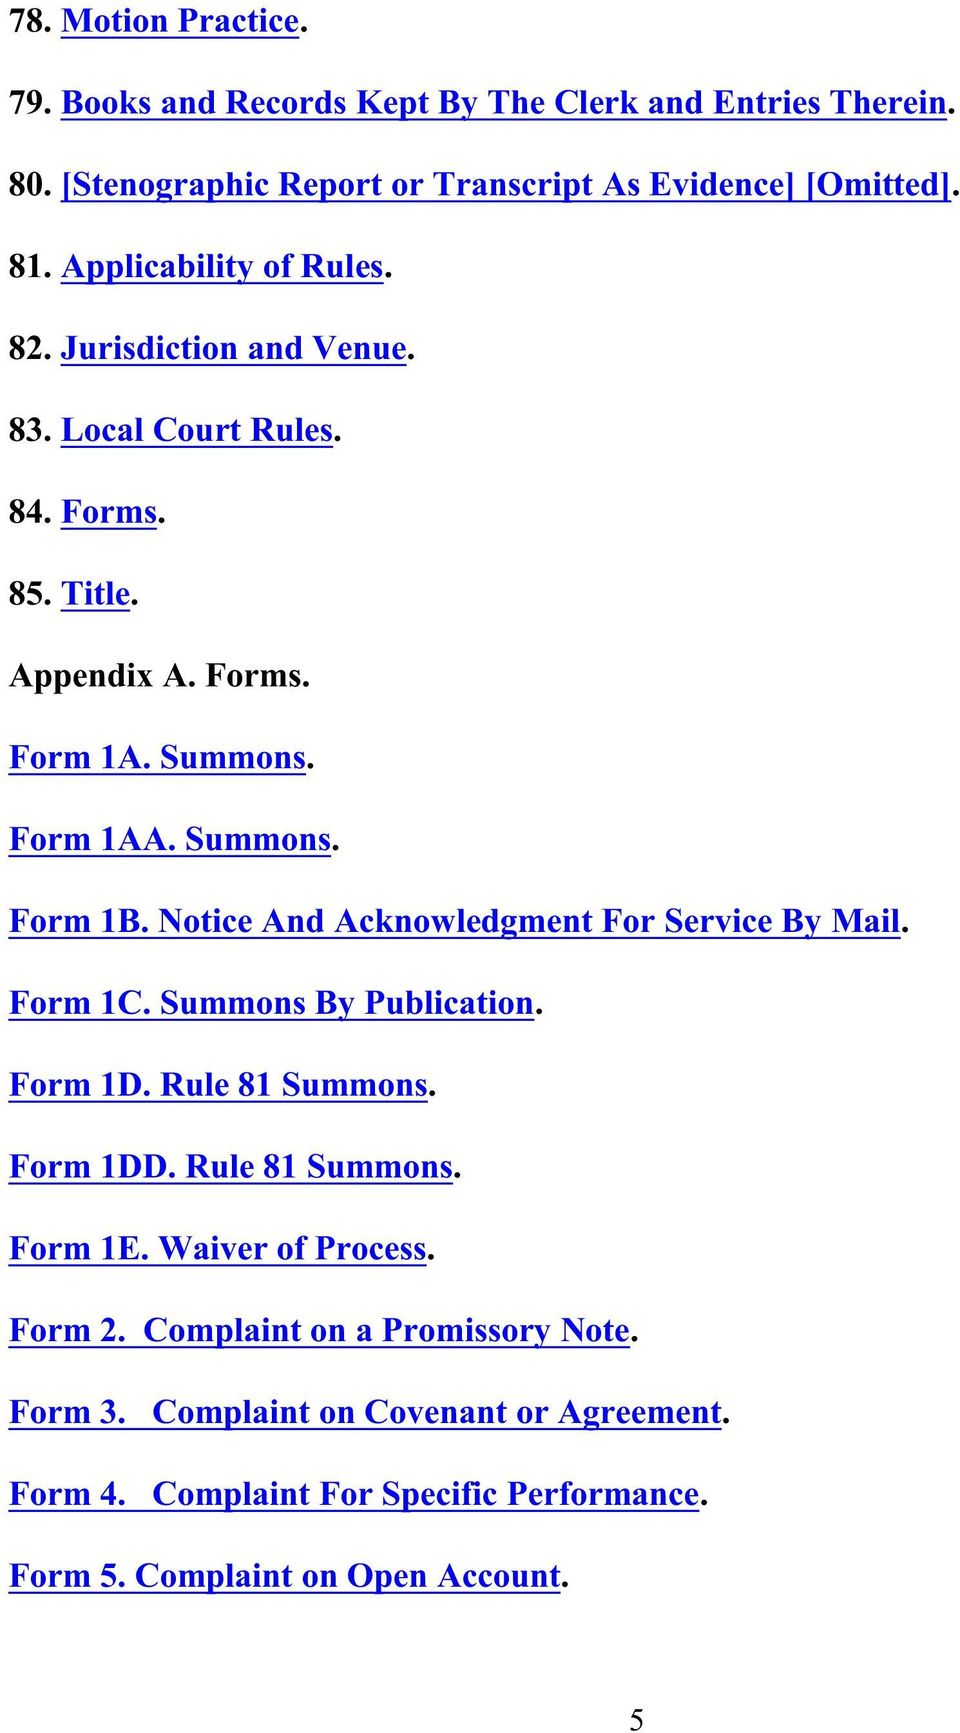 Notice And Acknowledgment For Service By Mail. Form 1C. Summons By Publication. Form 1D. Rule 81 Summons. Form 1DD. Rule 81 Summons. Form 1E.